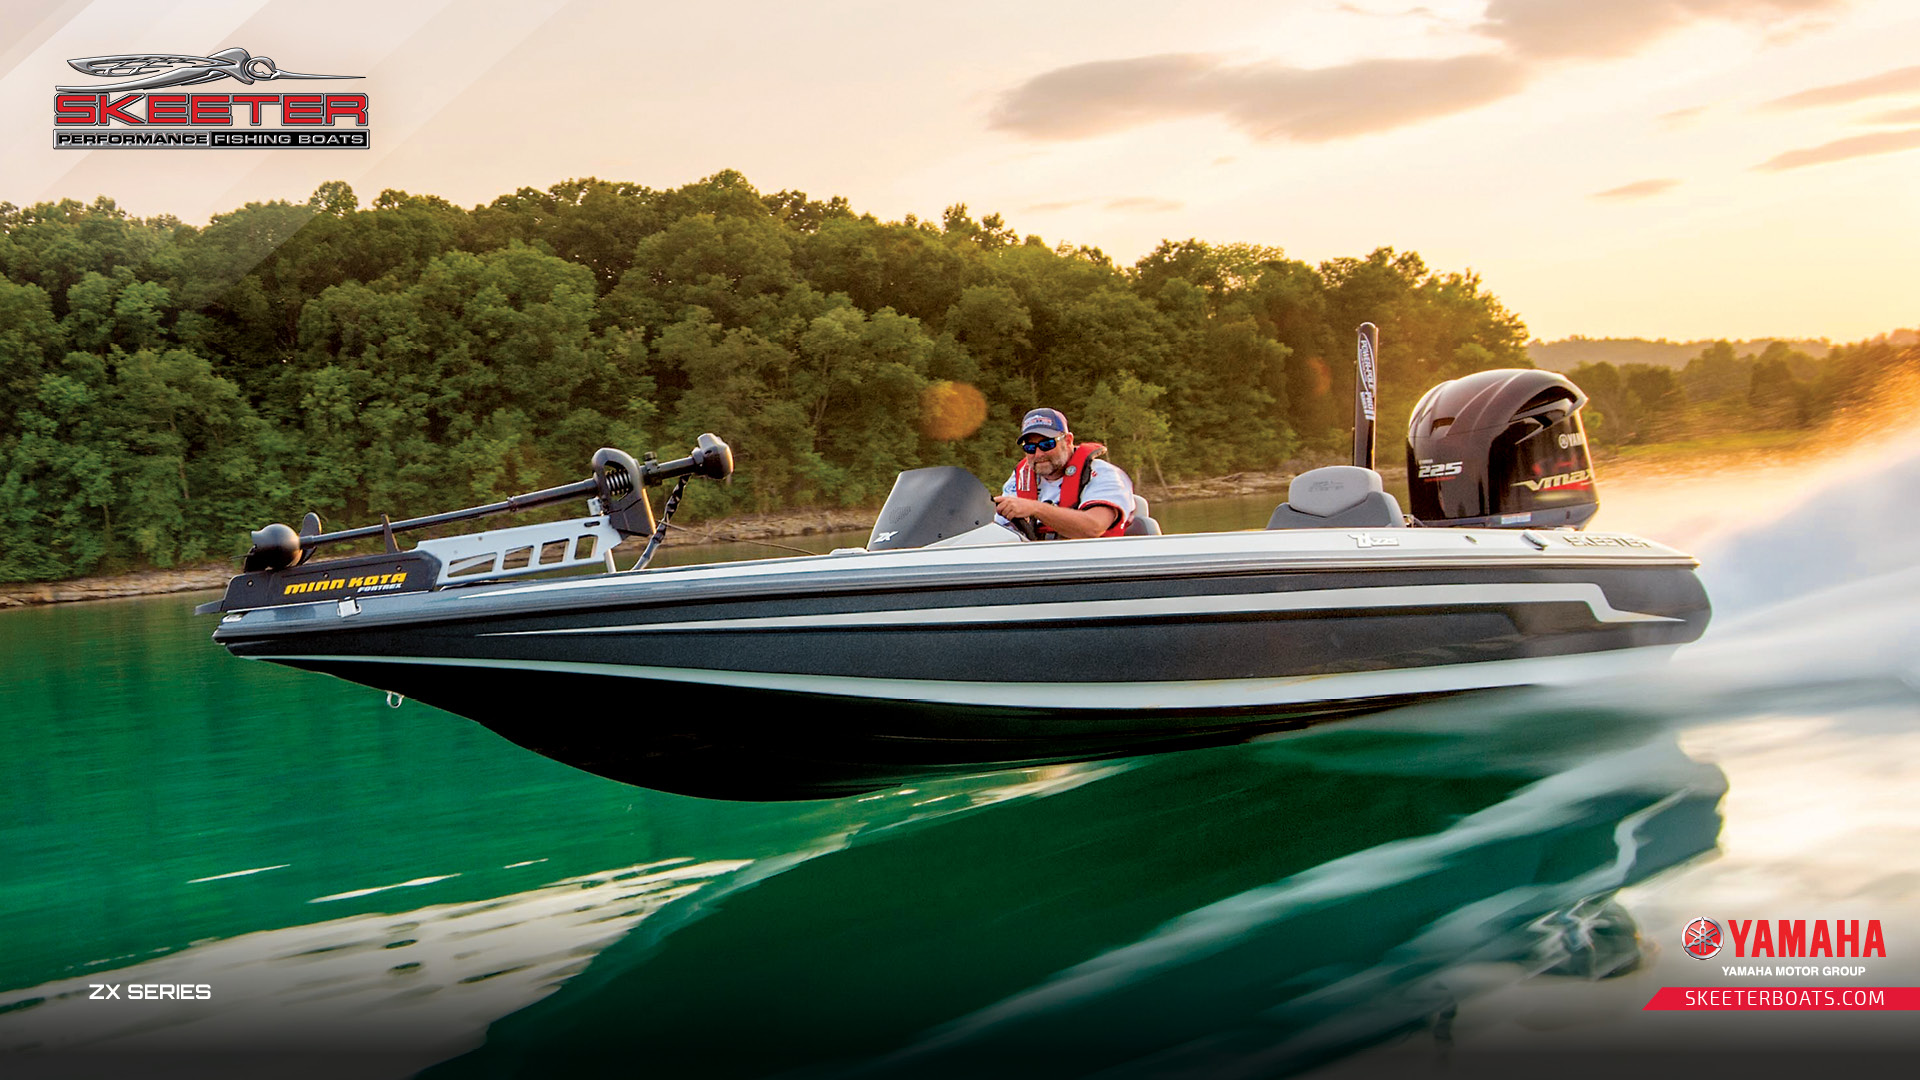 Bass Boat Wallpapers Skeeter Boats HD Wallpapers Download Free Images Wallpaper [1000image.com]